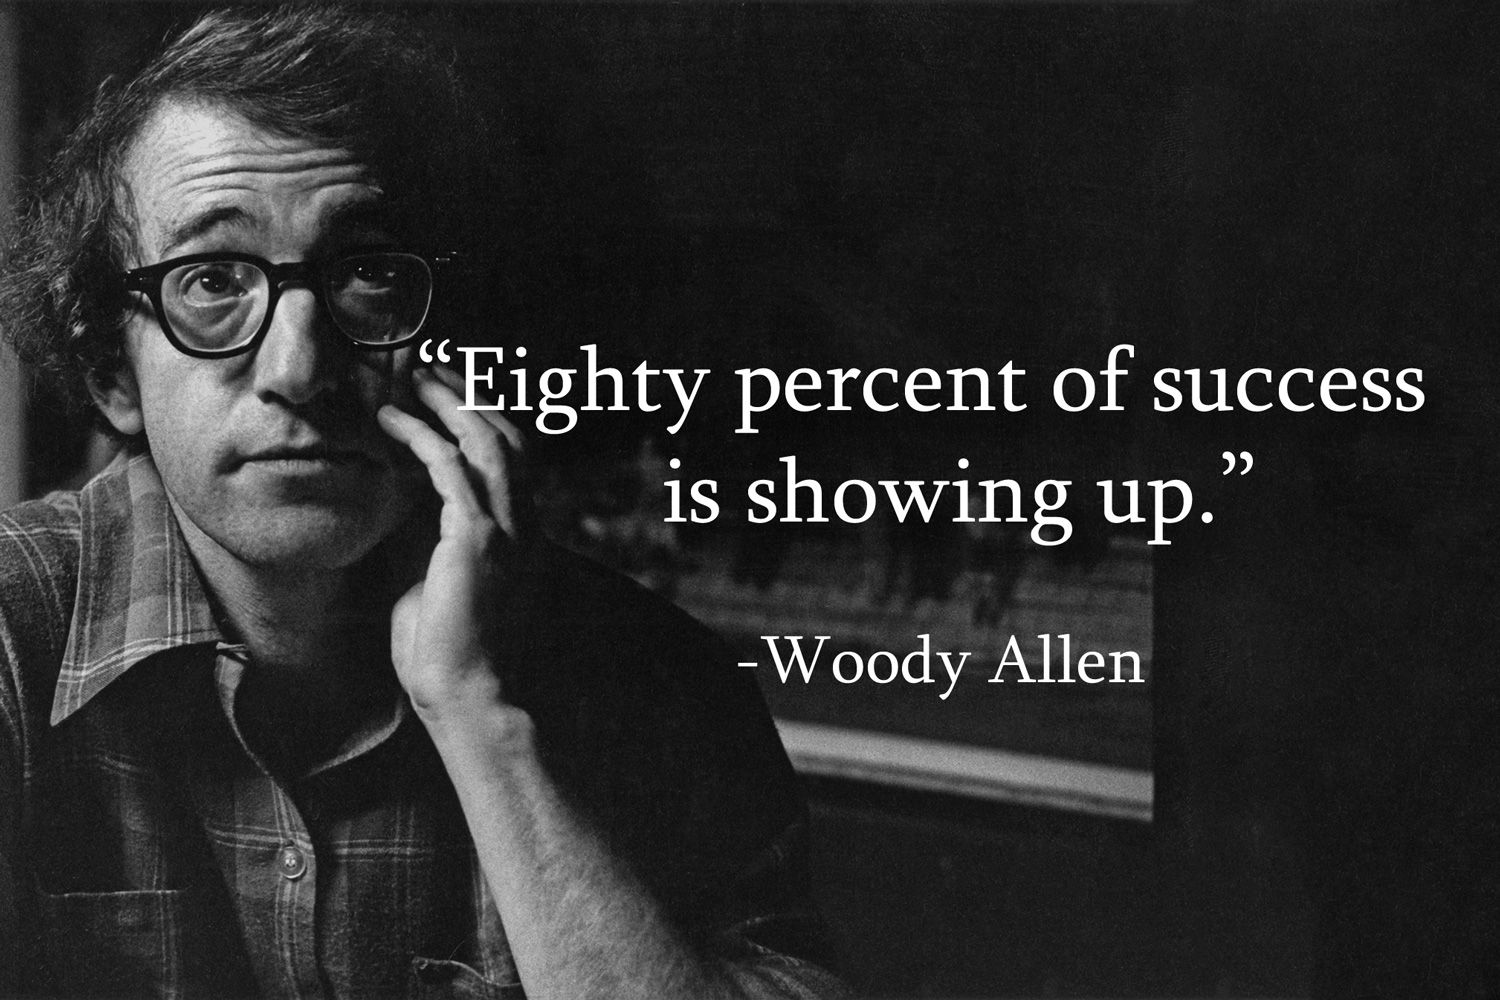 80-eighty-percent-of-success-is-showing-up-woody-allen-quote